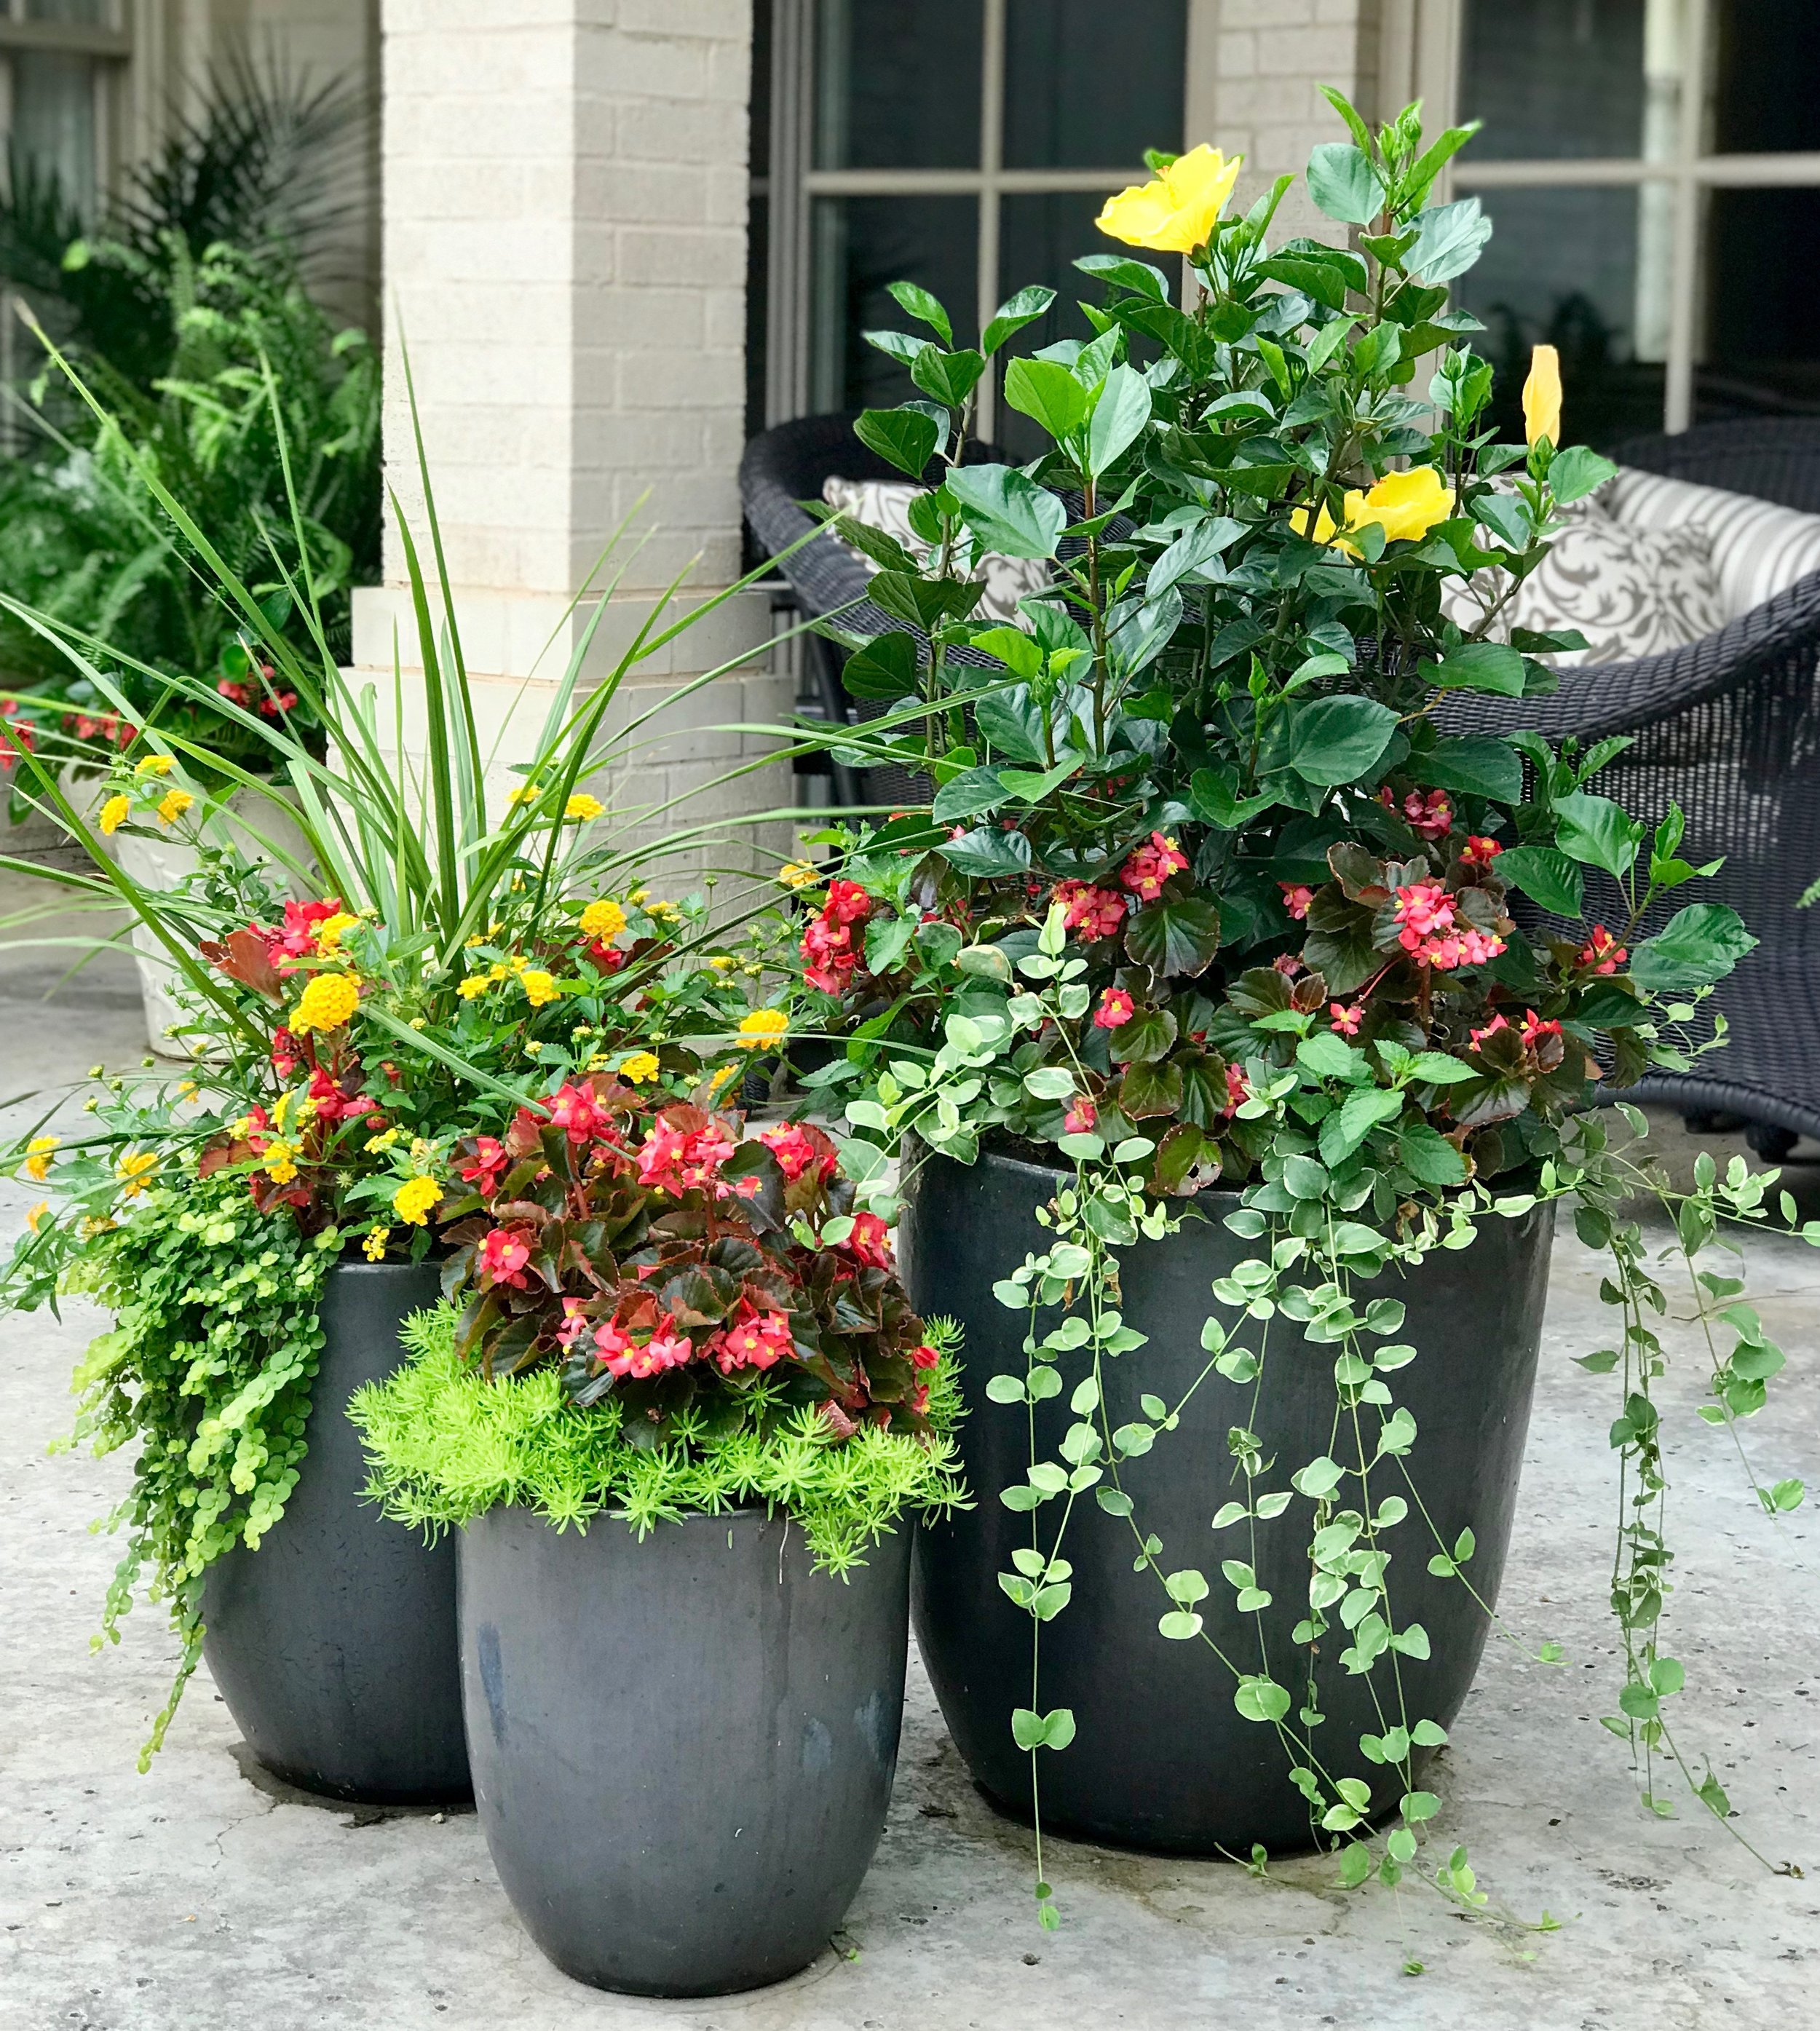 Coordinated color combinations    One of our favorite things about container garden design is the challenge of finding the right mix of colors and textures to put in a container. If you are planting a trio of containers like in this picture or planting containers that are near each other, you will want to coordinate the colors. Here we went with the red and yellow theme. Red leaf begonias are the flowers used in all three and visually ties them together. The yellow pops are hibiscus in the large planter and lantana in the medium sized planter. We love how the three containers blend well together but aren't totally matchy-matchy.